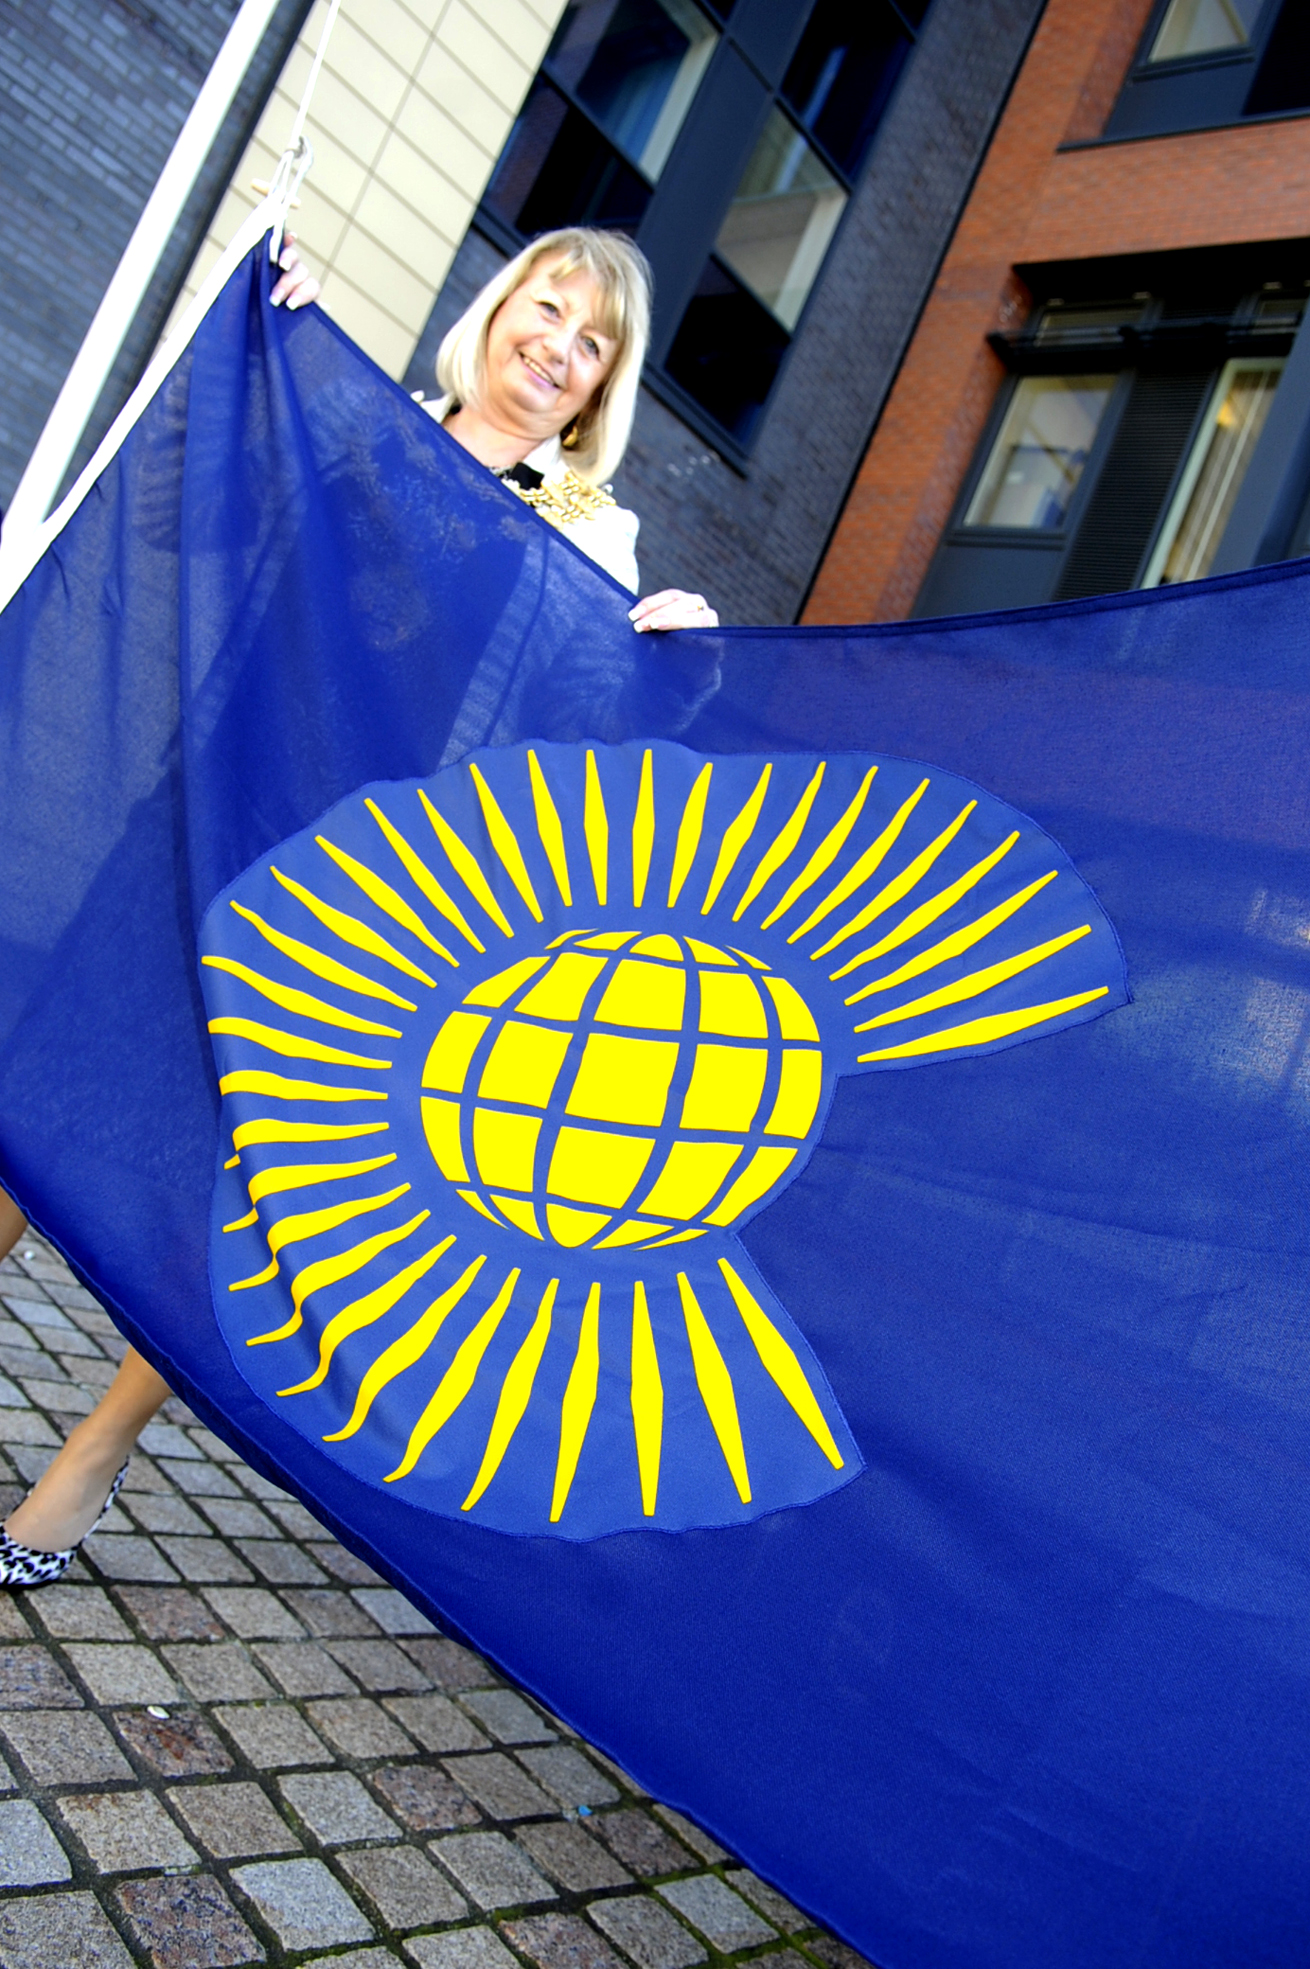 The Mayor of Bury Cllr Sharon Briggs with the Commonwealth flag